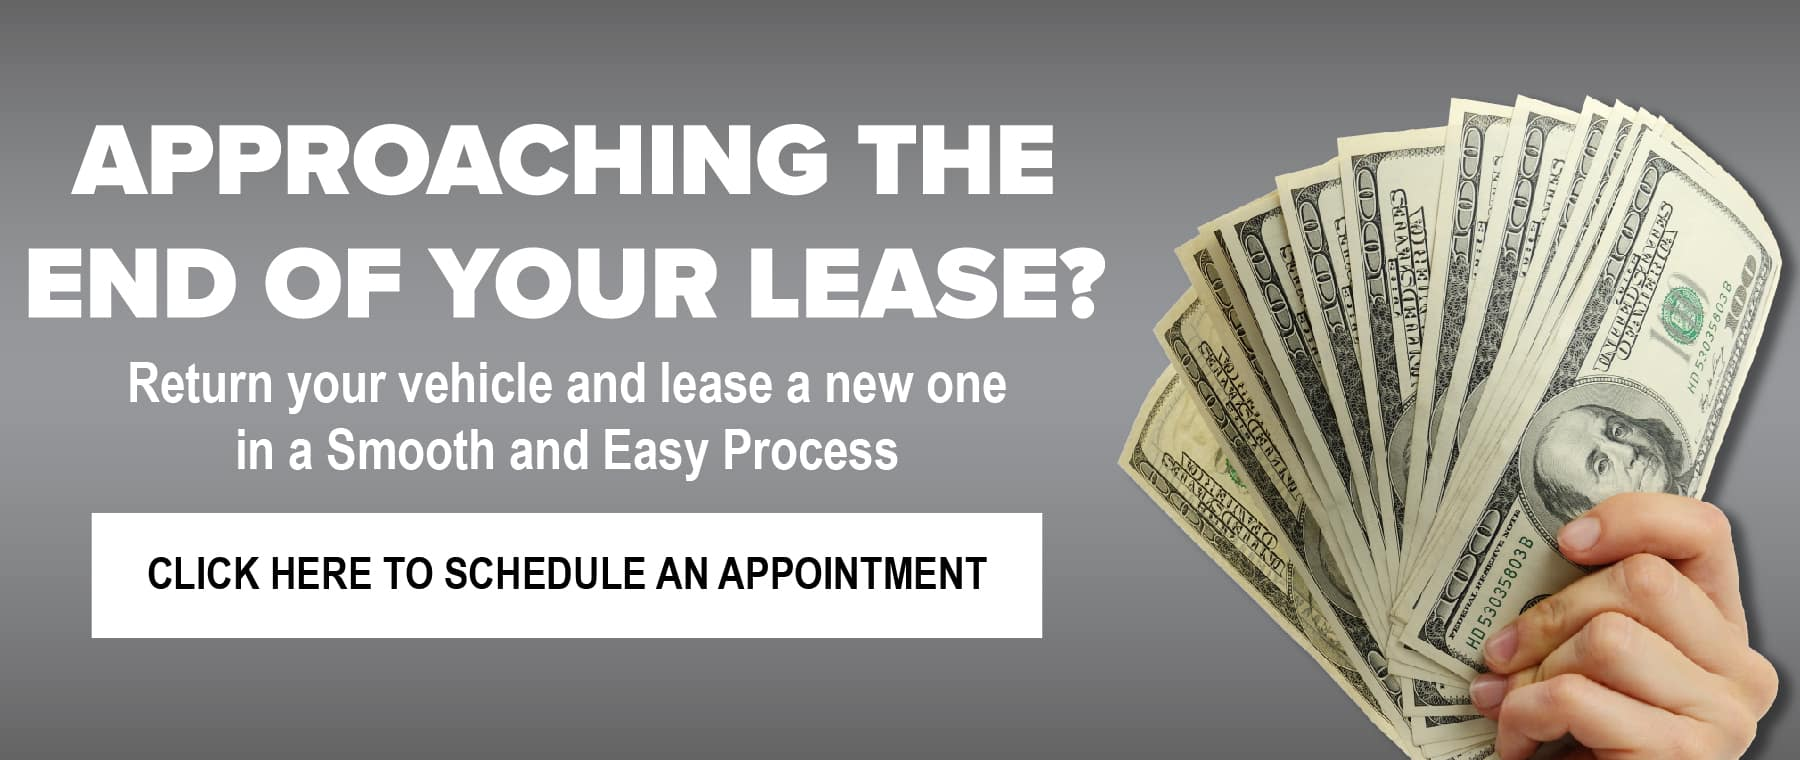 Approaching the End of your Lease